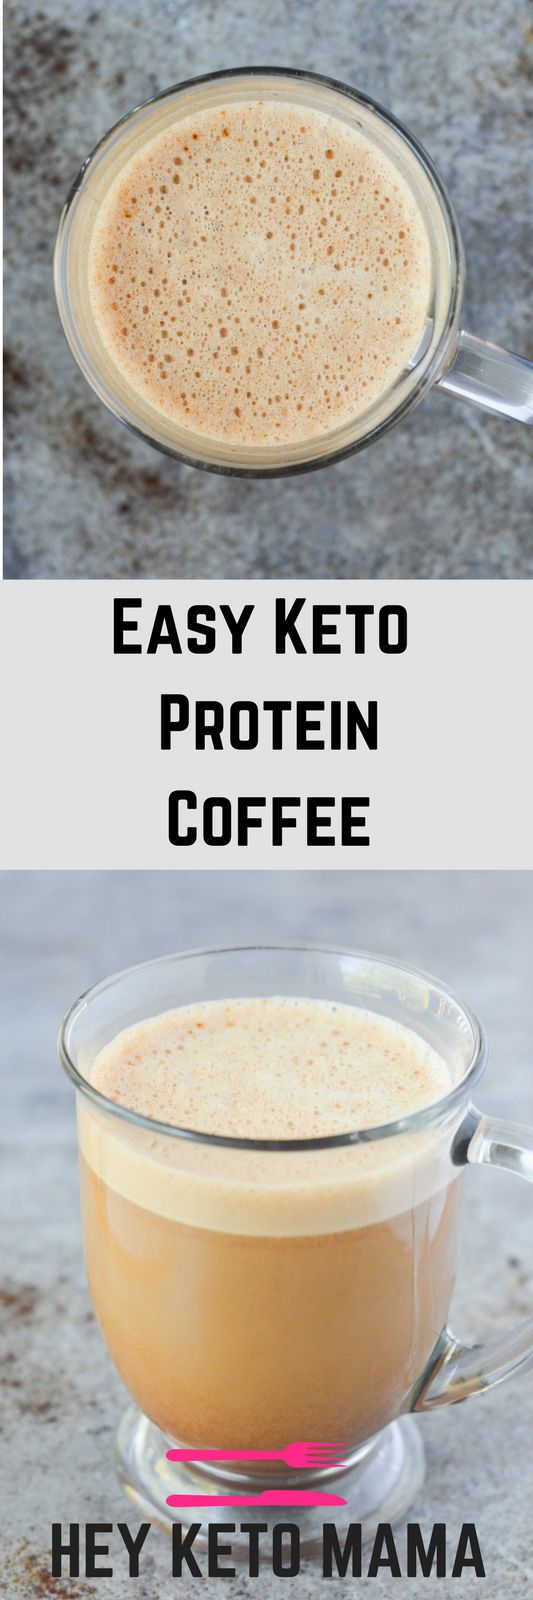 Can I Drink Protein Shakes On Keto